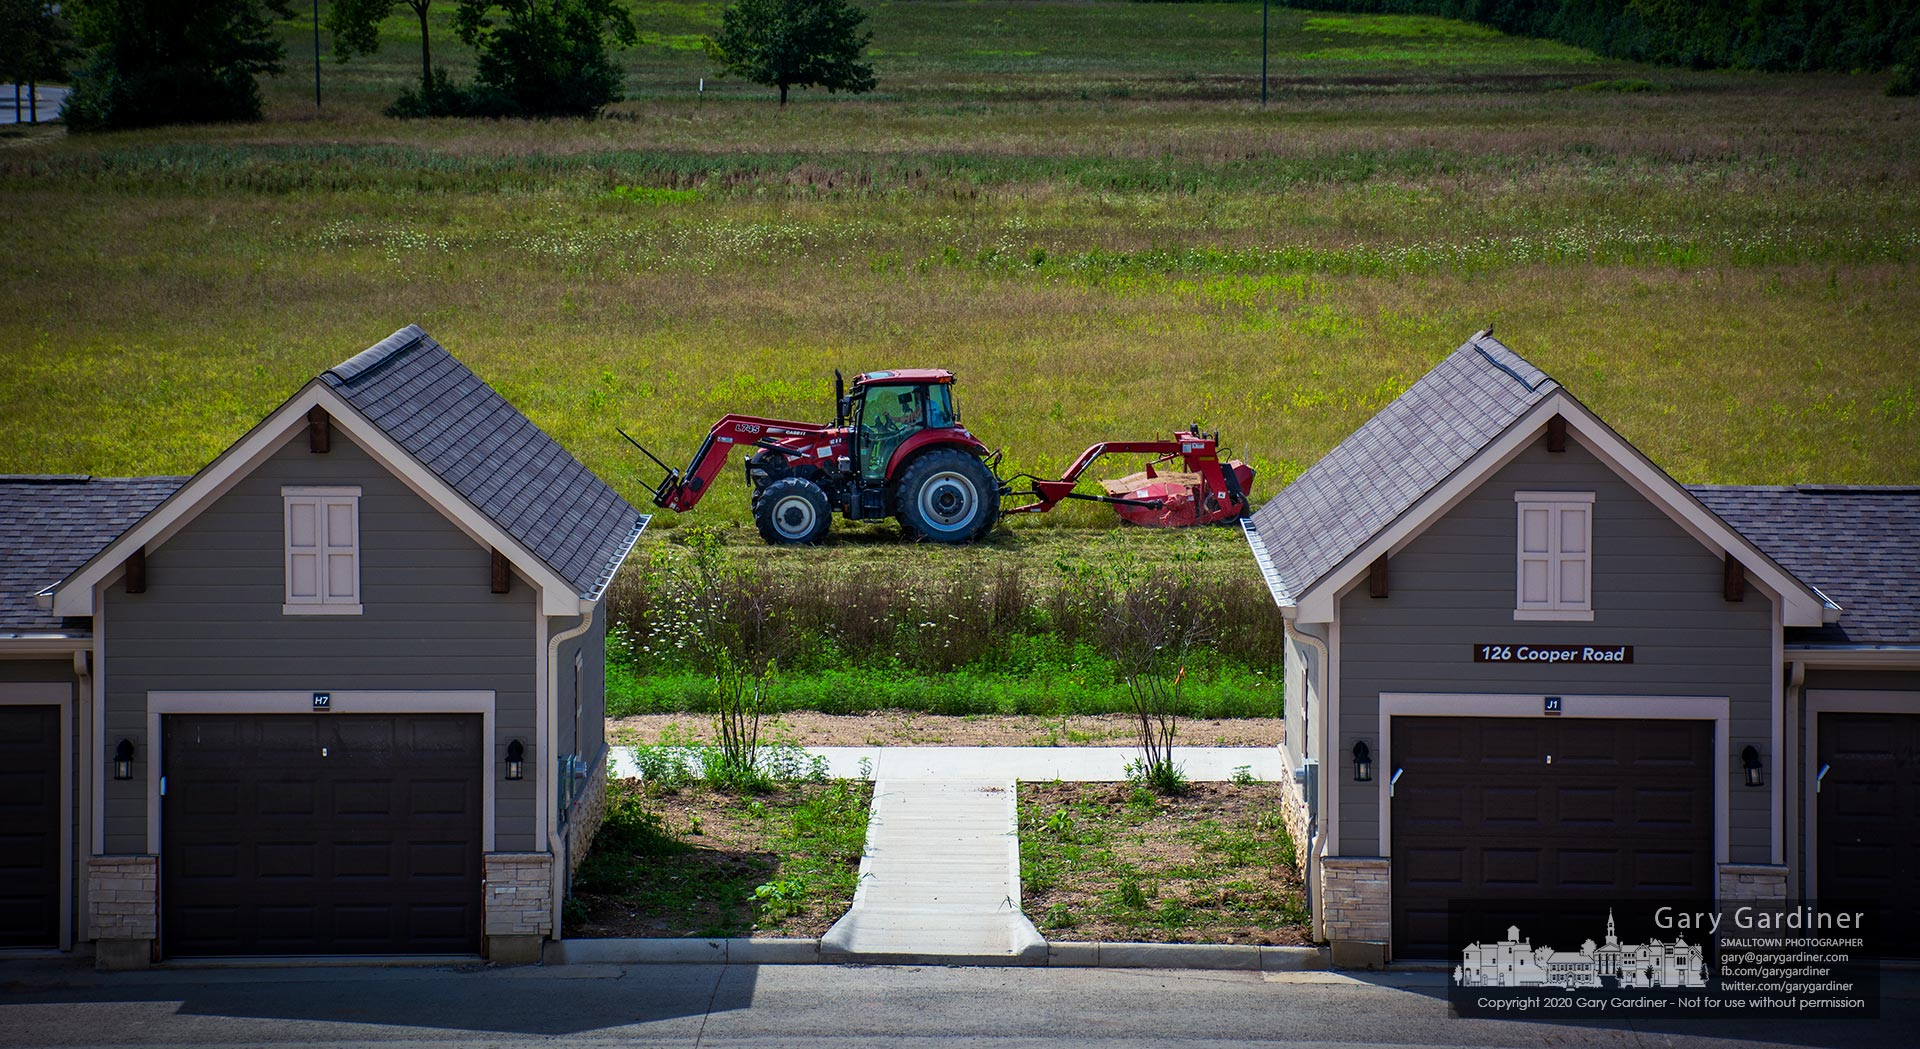 Rodney Parker runs a tractor around the hayfield on Cooper Road adjacent to the new apartment complex under construction next to the bike path along Alum Creek. My Final Photo for Aug. 5, 2020.